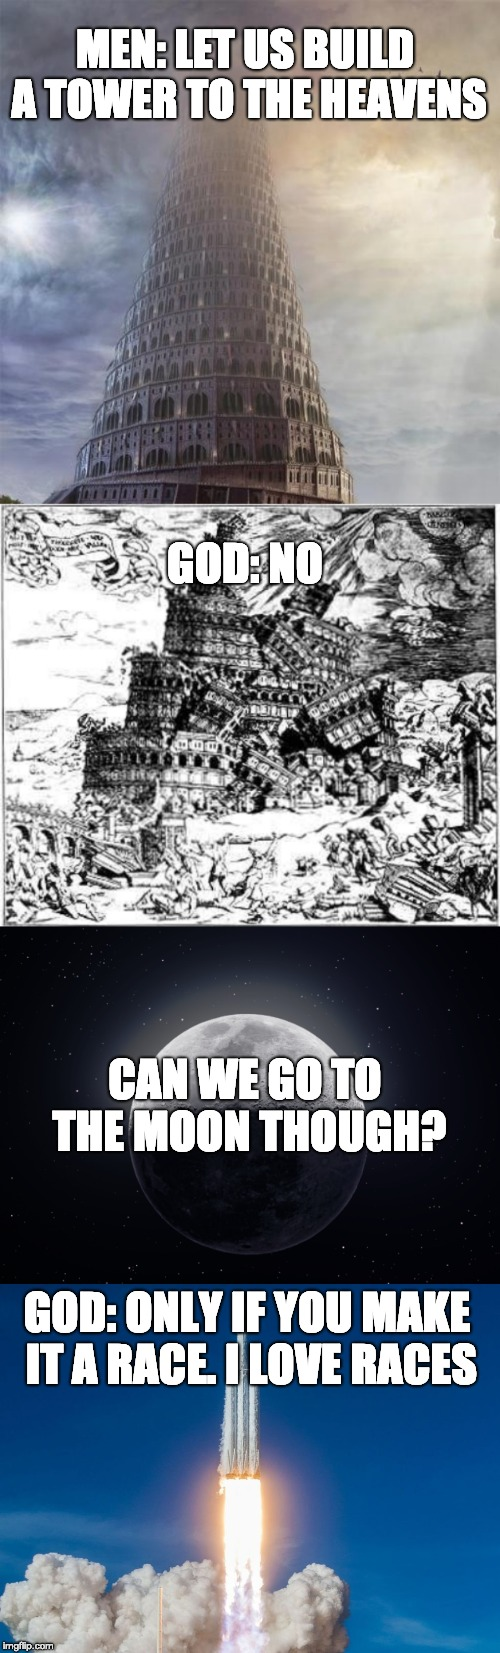 Get it? | MEN: LET US BUILD A TOWER TO THE HEAVENS  GOD: NO CAN WE GO TO THE MOON THOUGH? GOD: ONLY IF YOU MAKE IT A RACE. I LOVE RACES | image tagged in god,tower of babel,race,space,moon | made w/ Imgflip meme maker